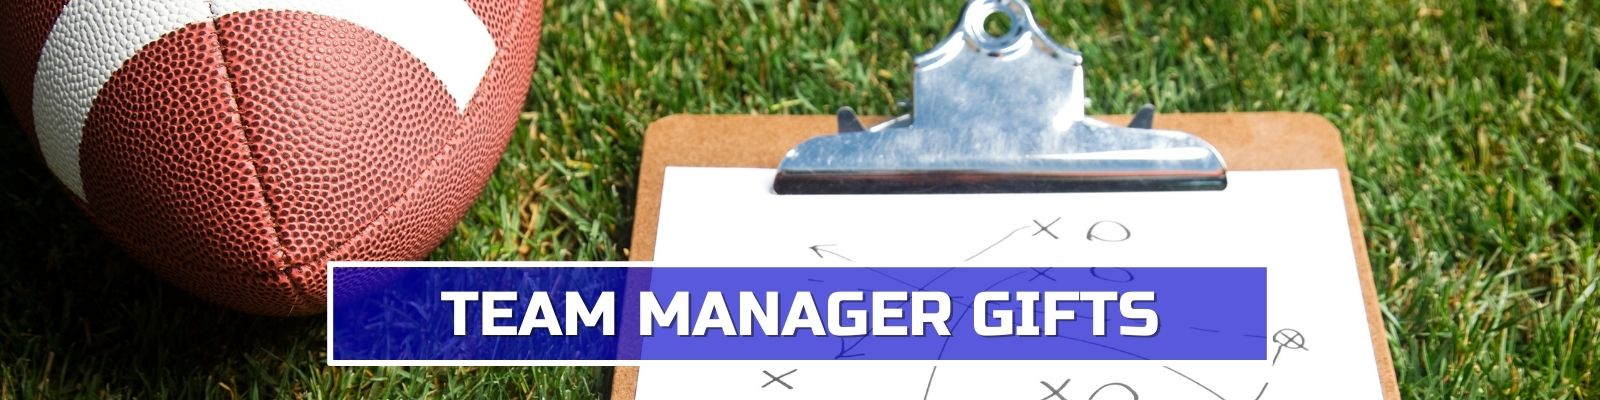 team-manager-gifts